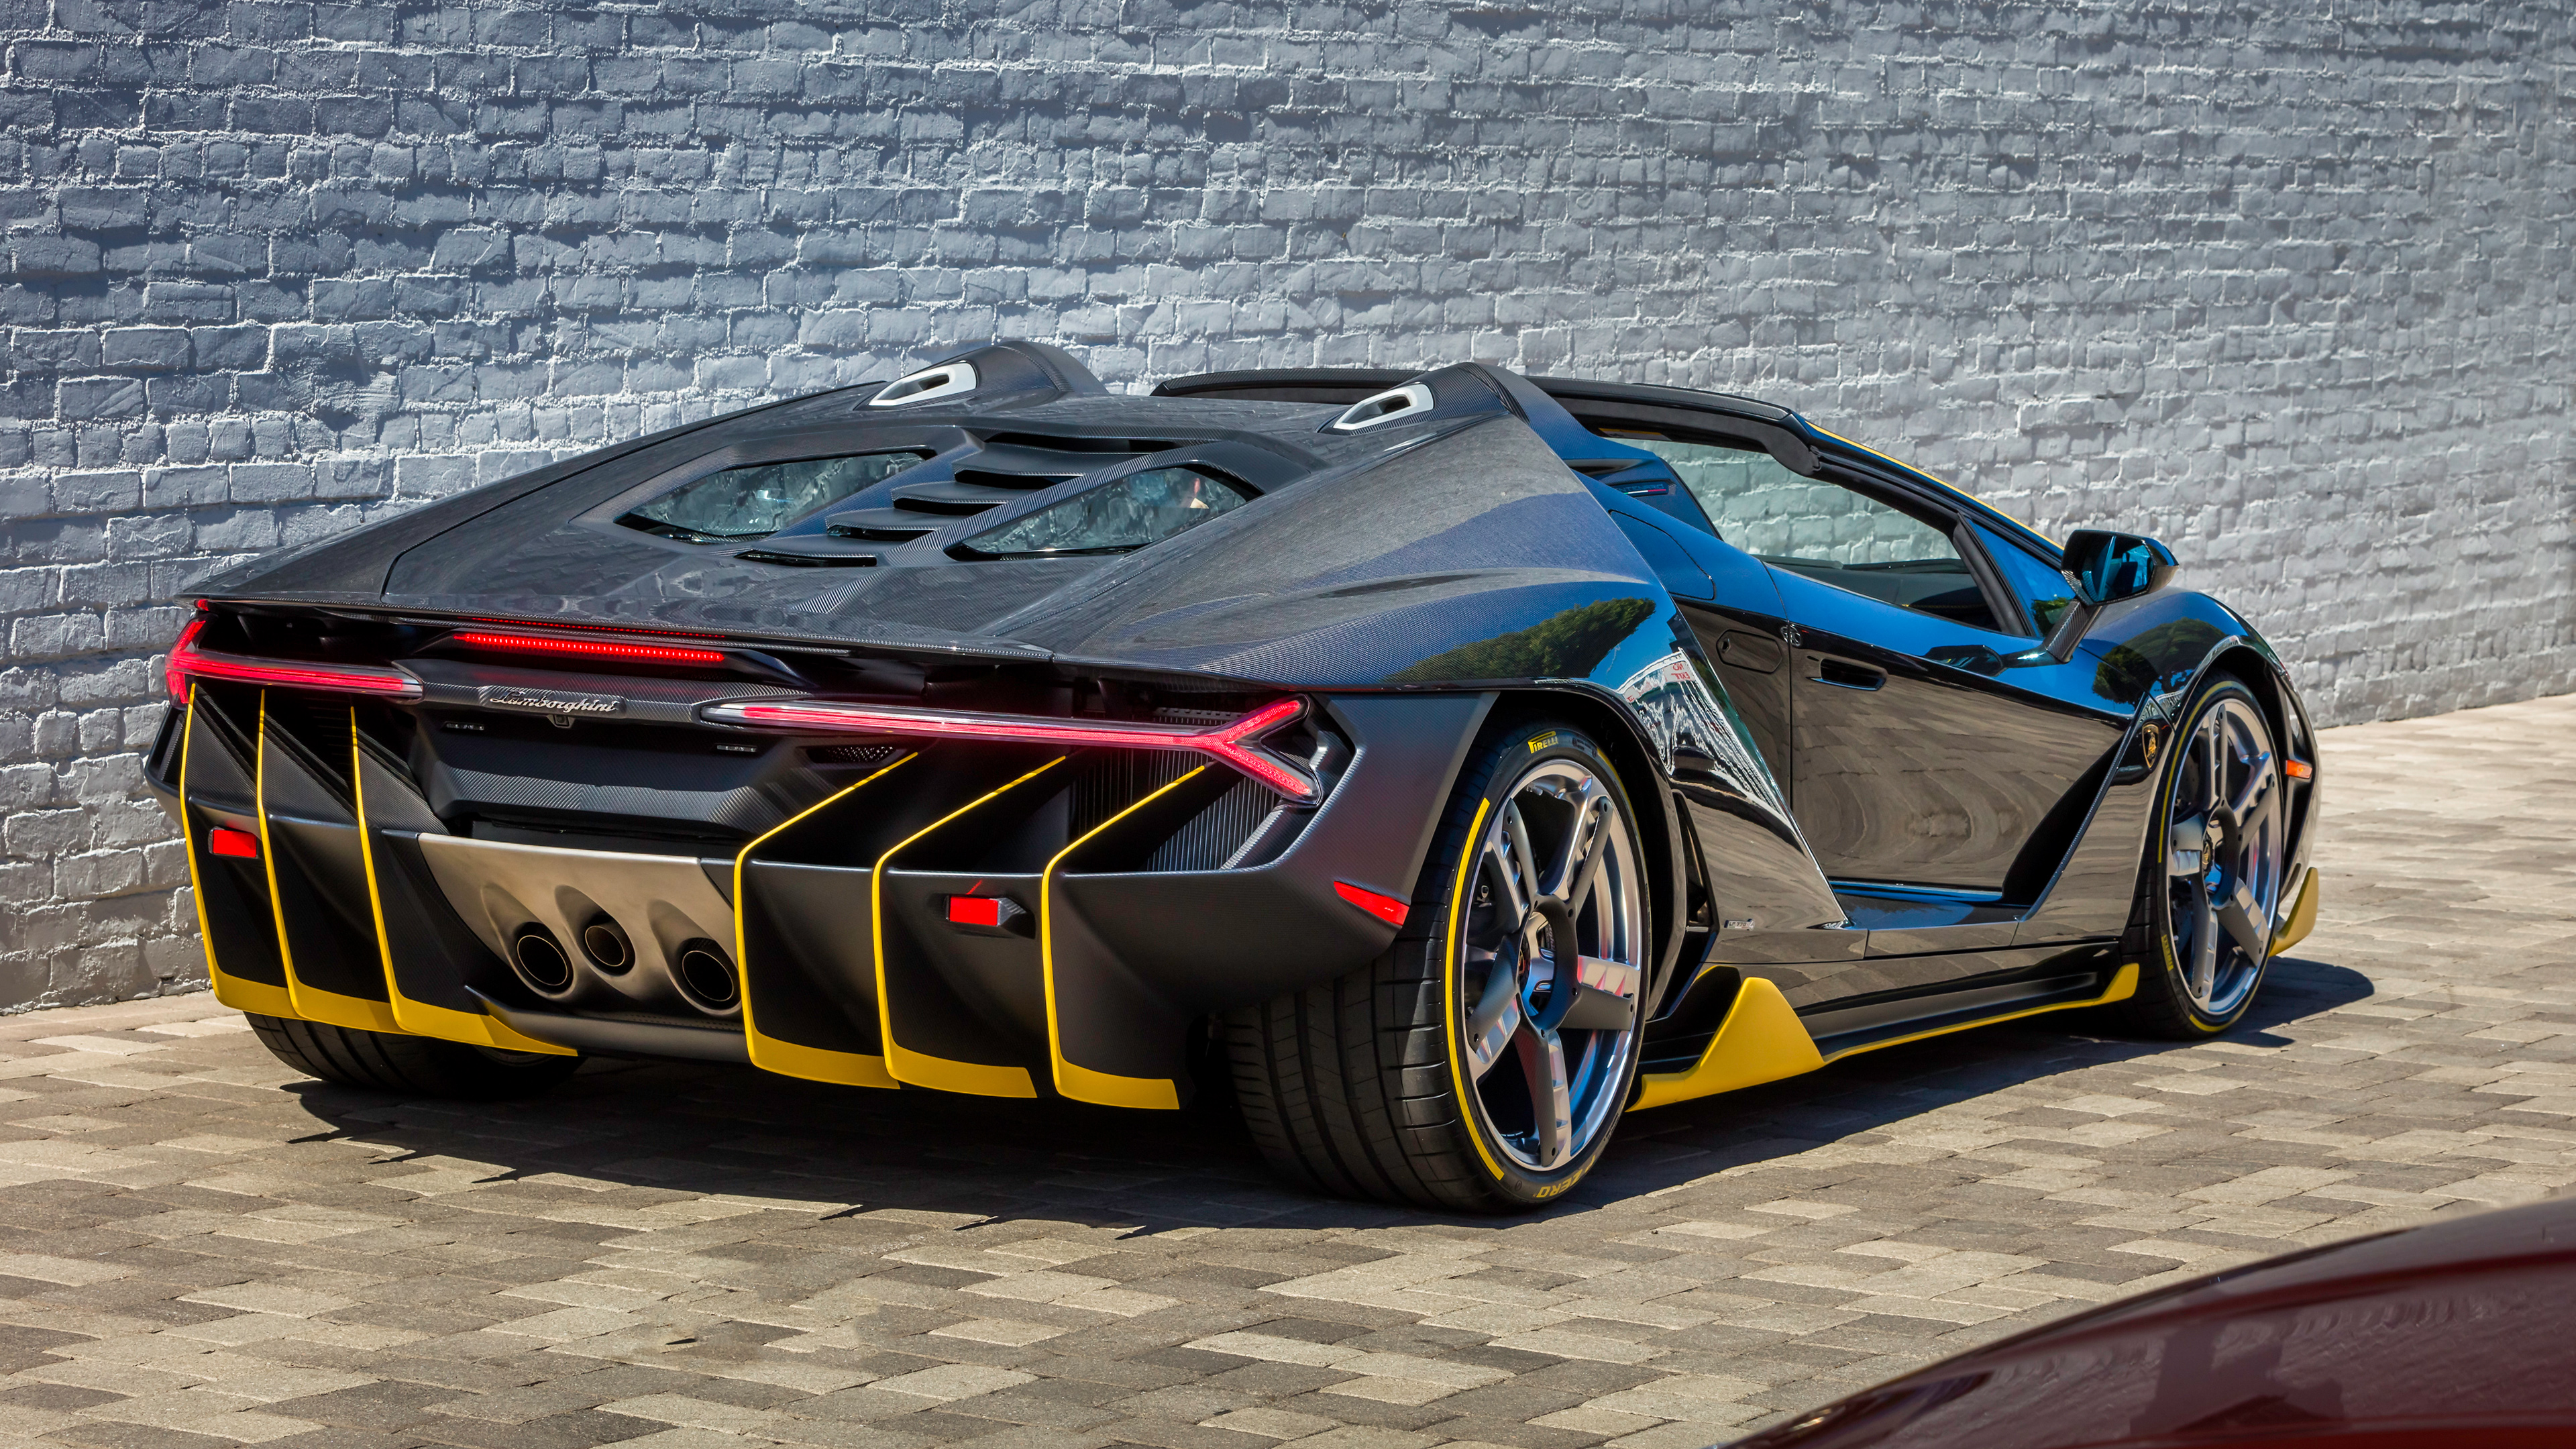 Lamborghini Centenario Roadster Rear Wallpaper Hd Car Wallpapers Id 7961